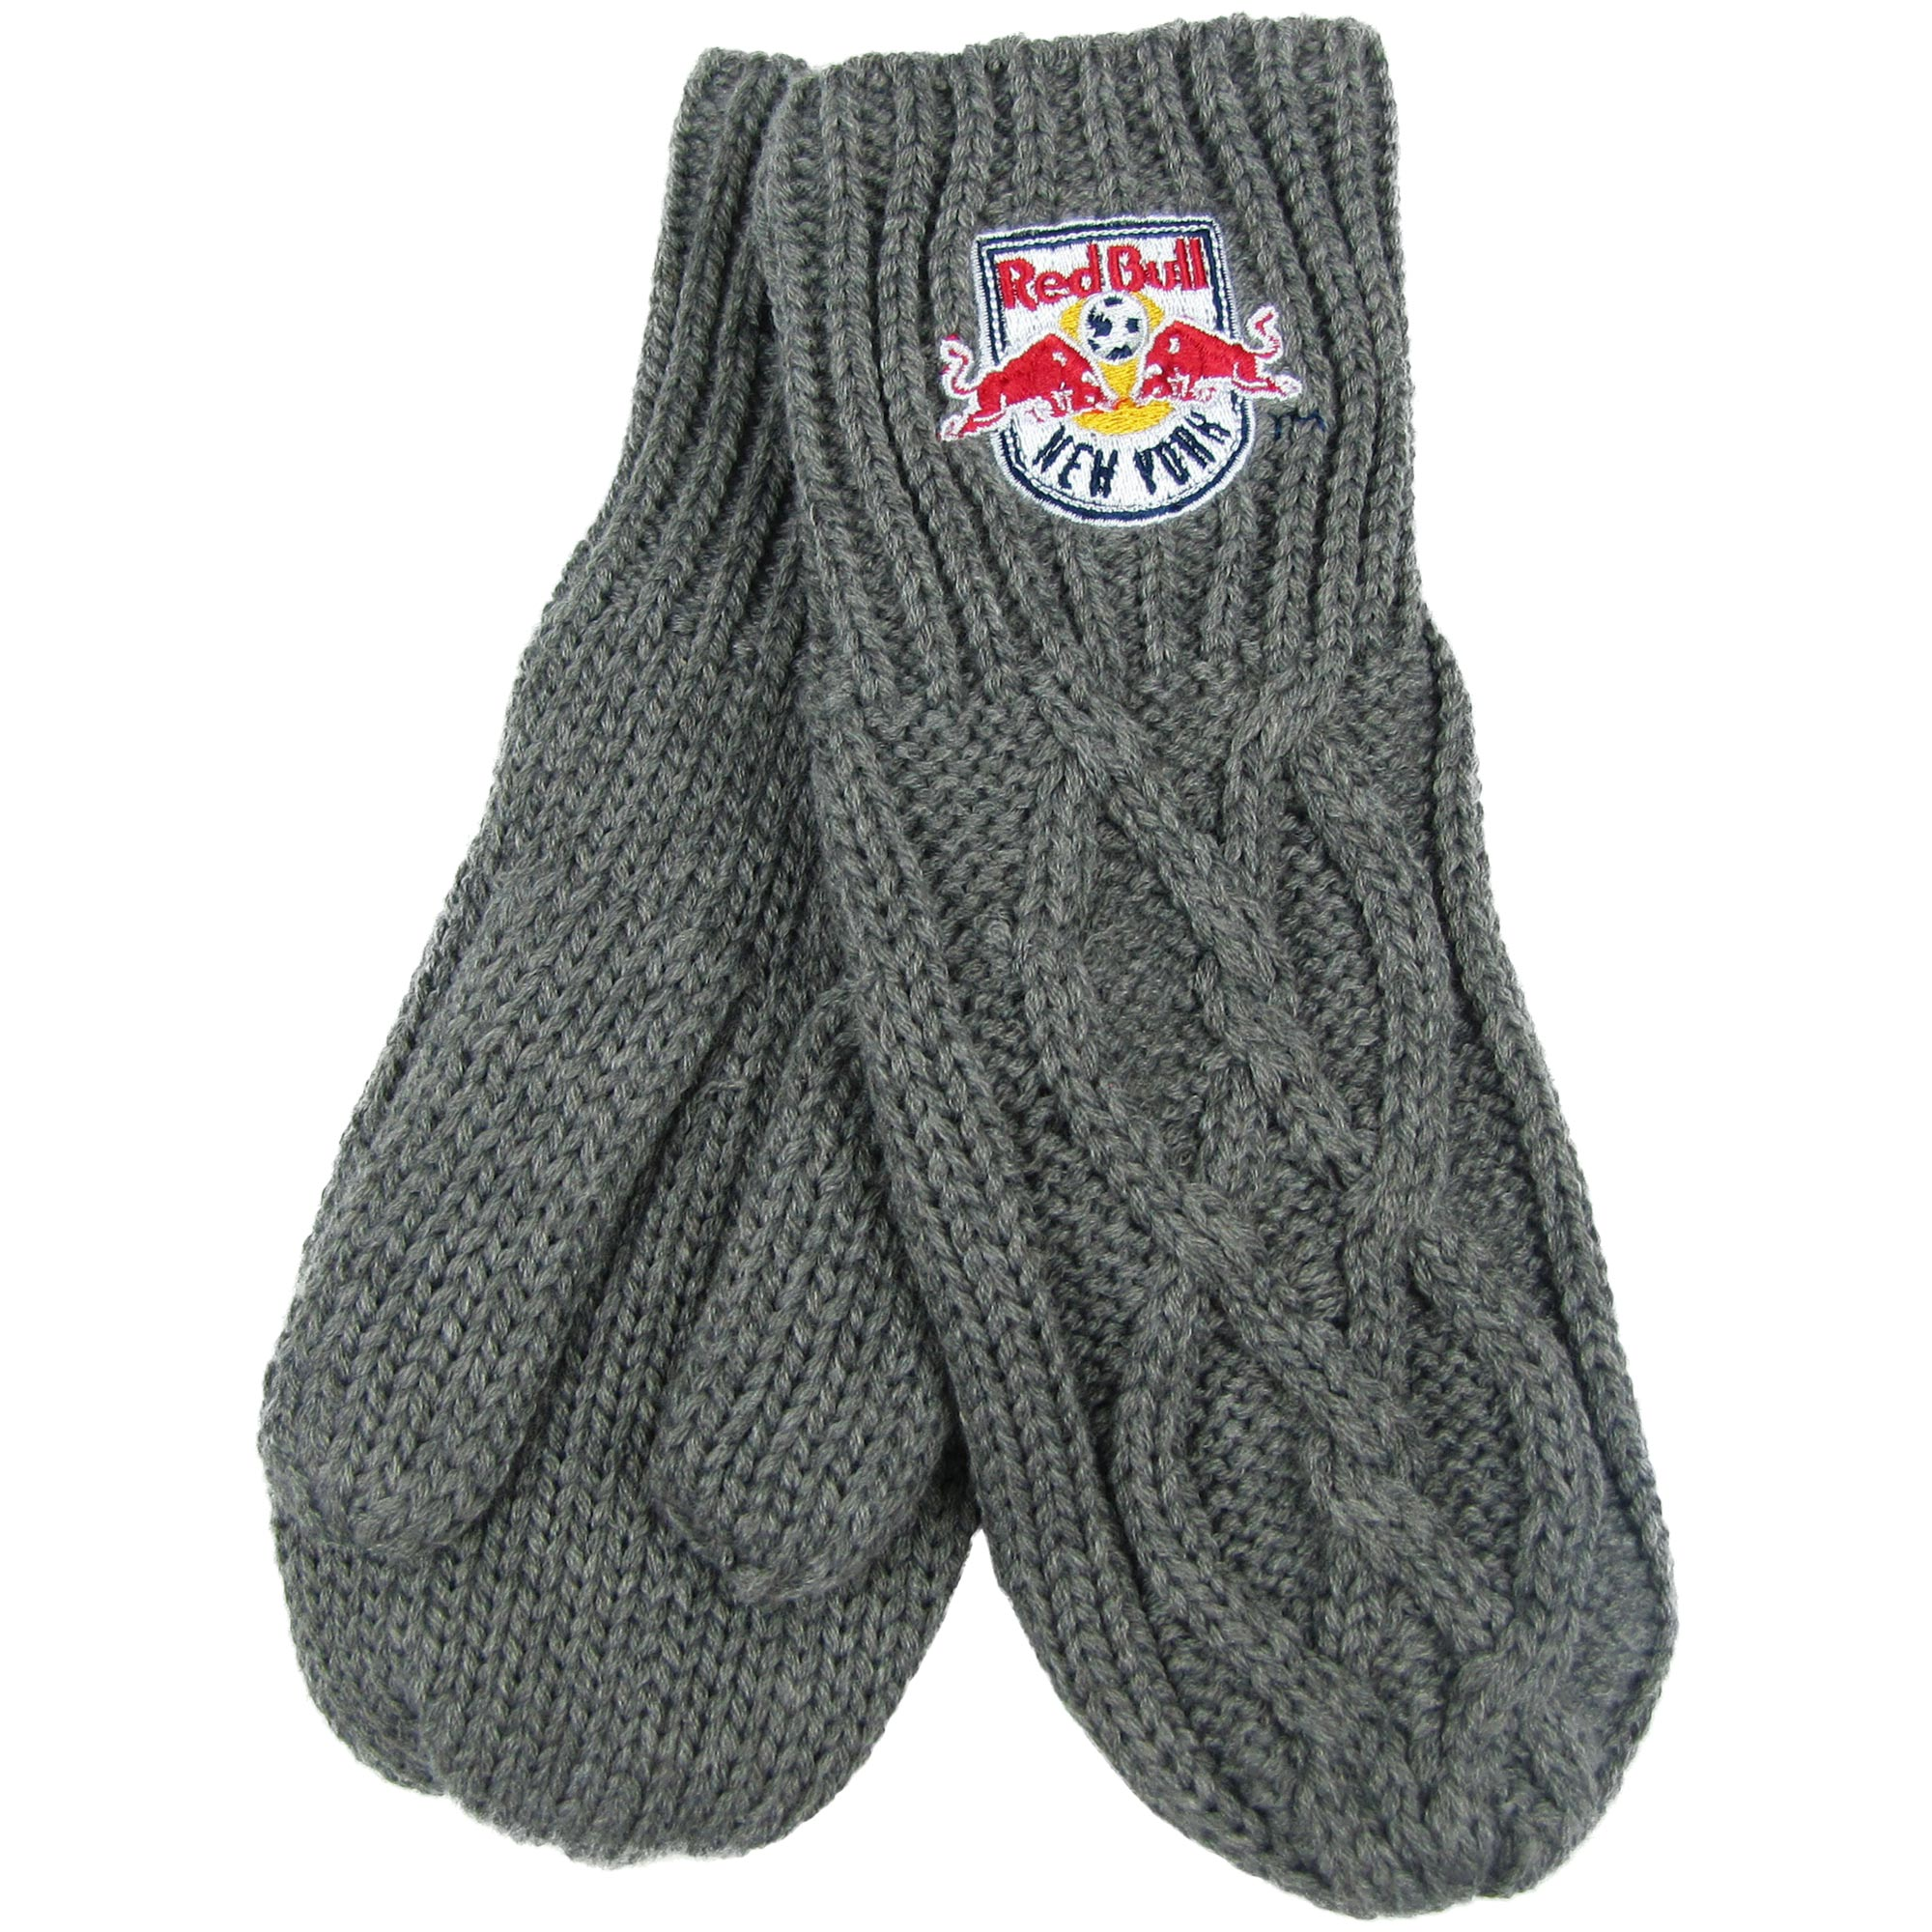 New York Red Bulls ZooZatz Women's Cable Knit Mittens - Charcoal - No Size